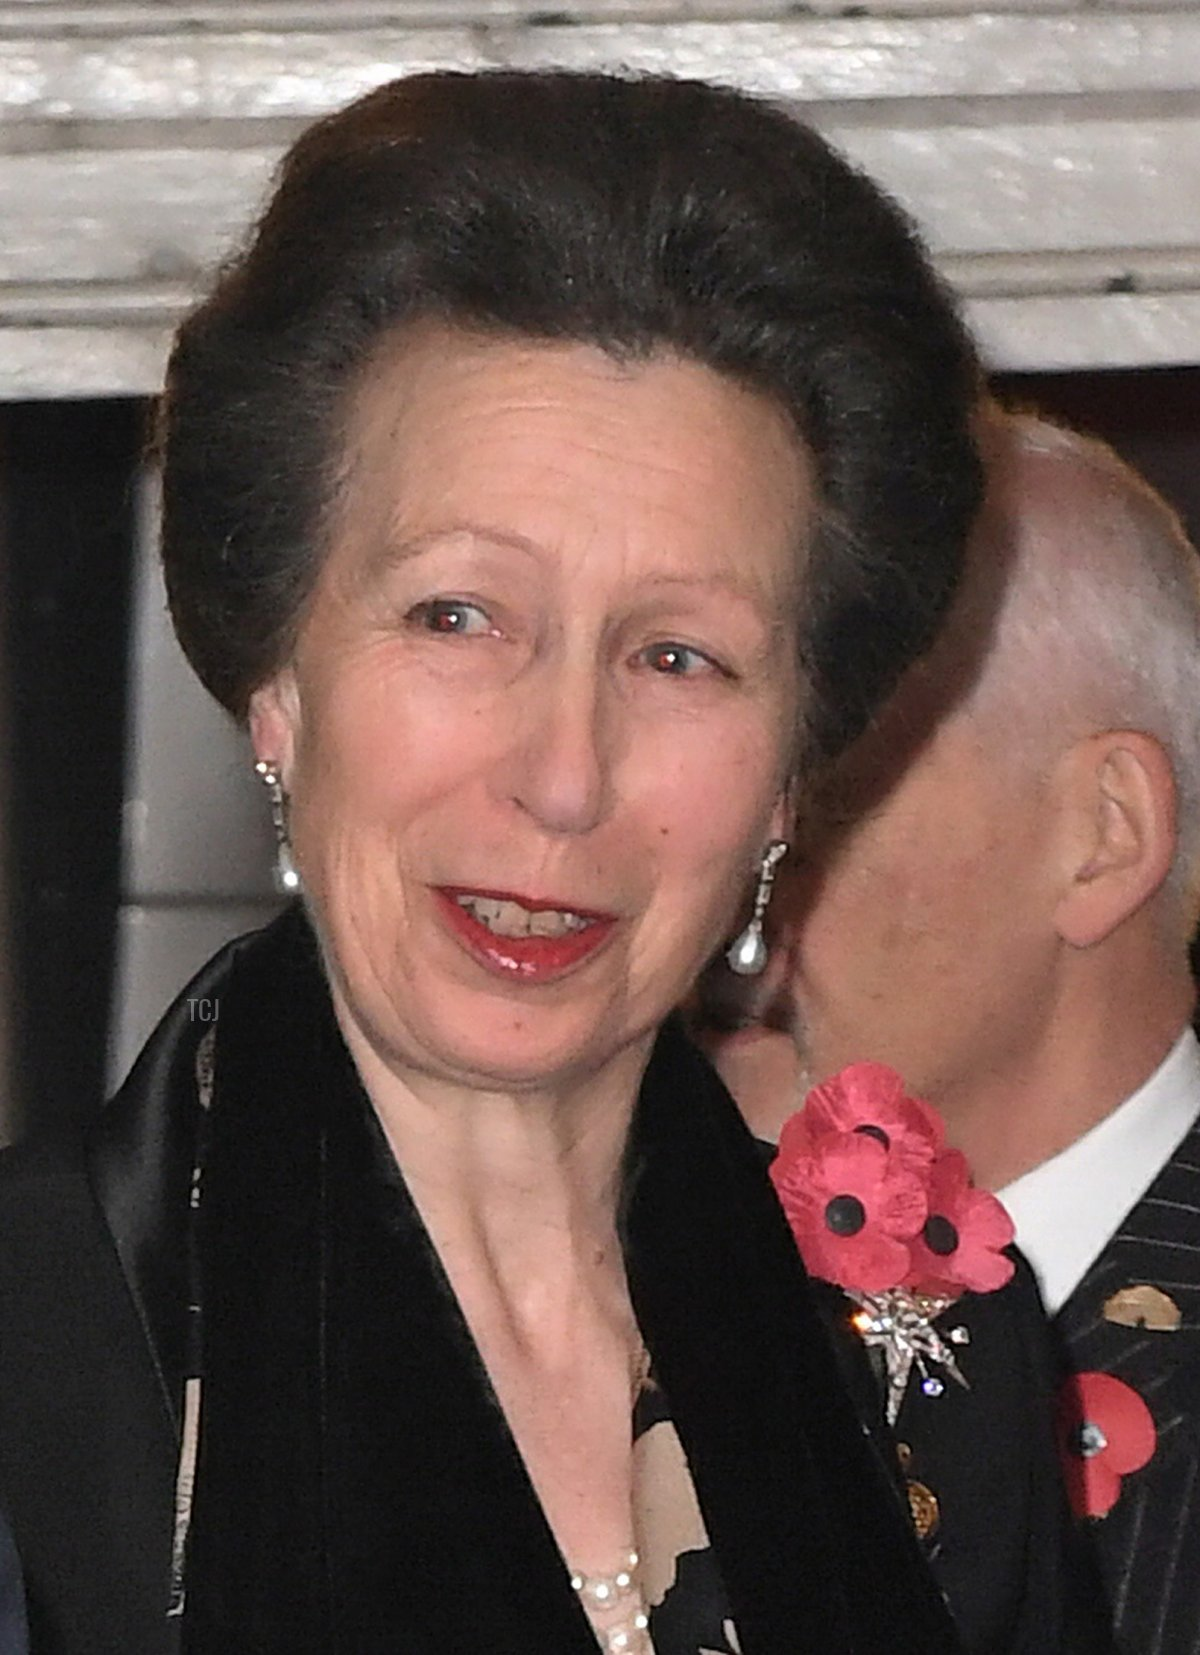 Britain's Princess Anne, Princess Royal arrives at the Royal Albert Hall for the annual Royal Festival of Remembrance in central London on November 12, 2016